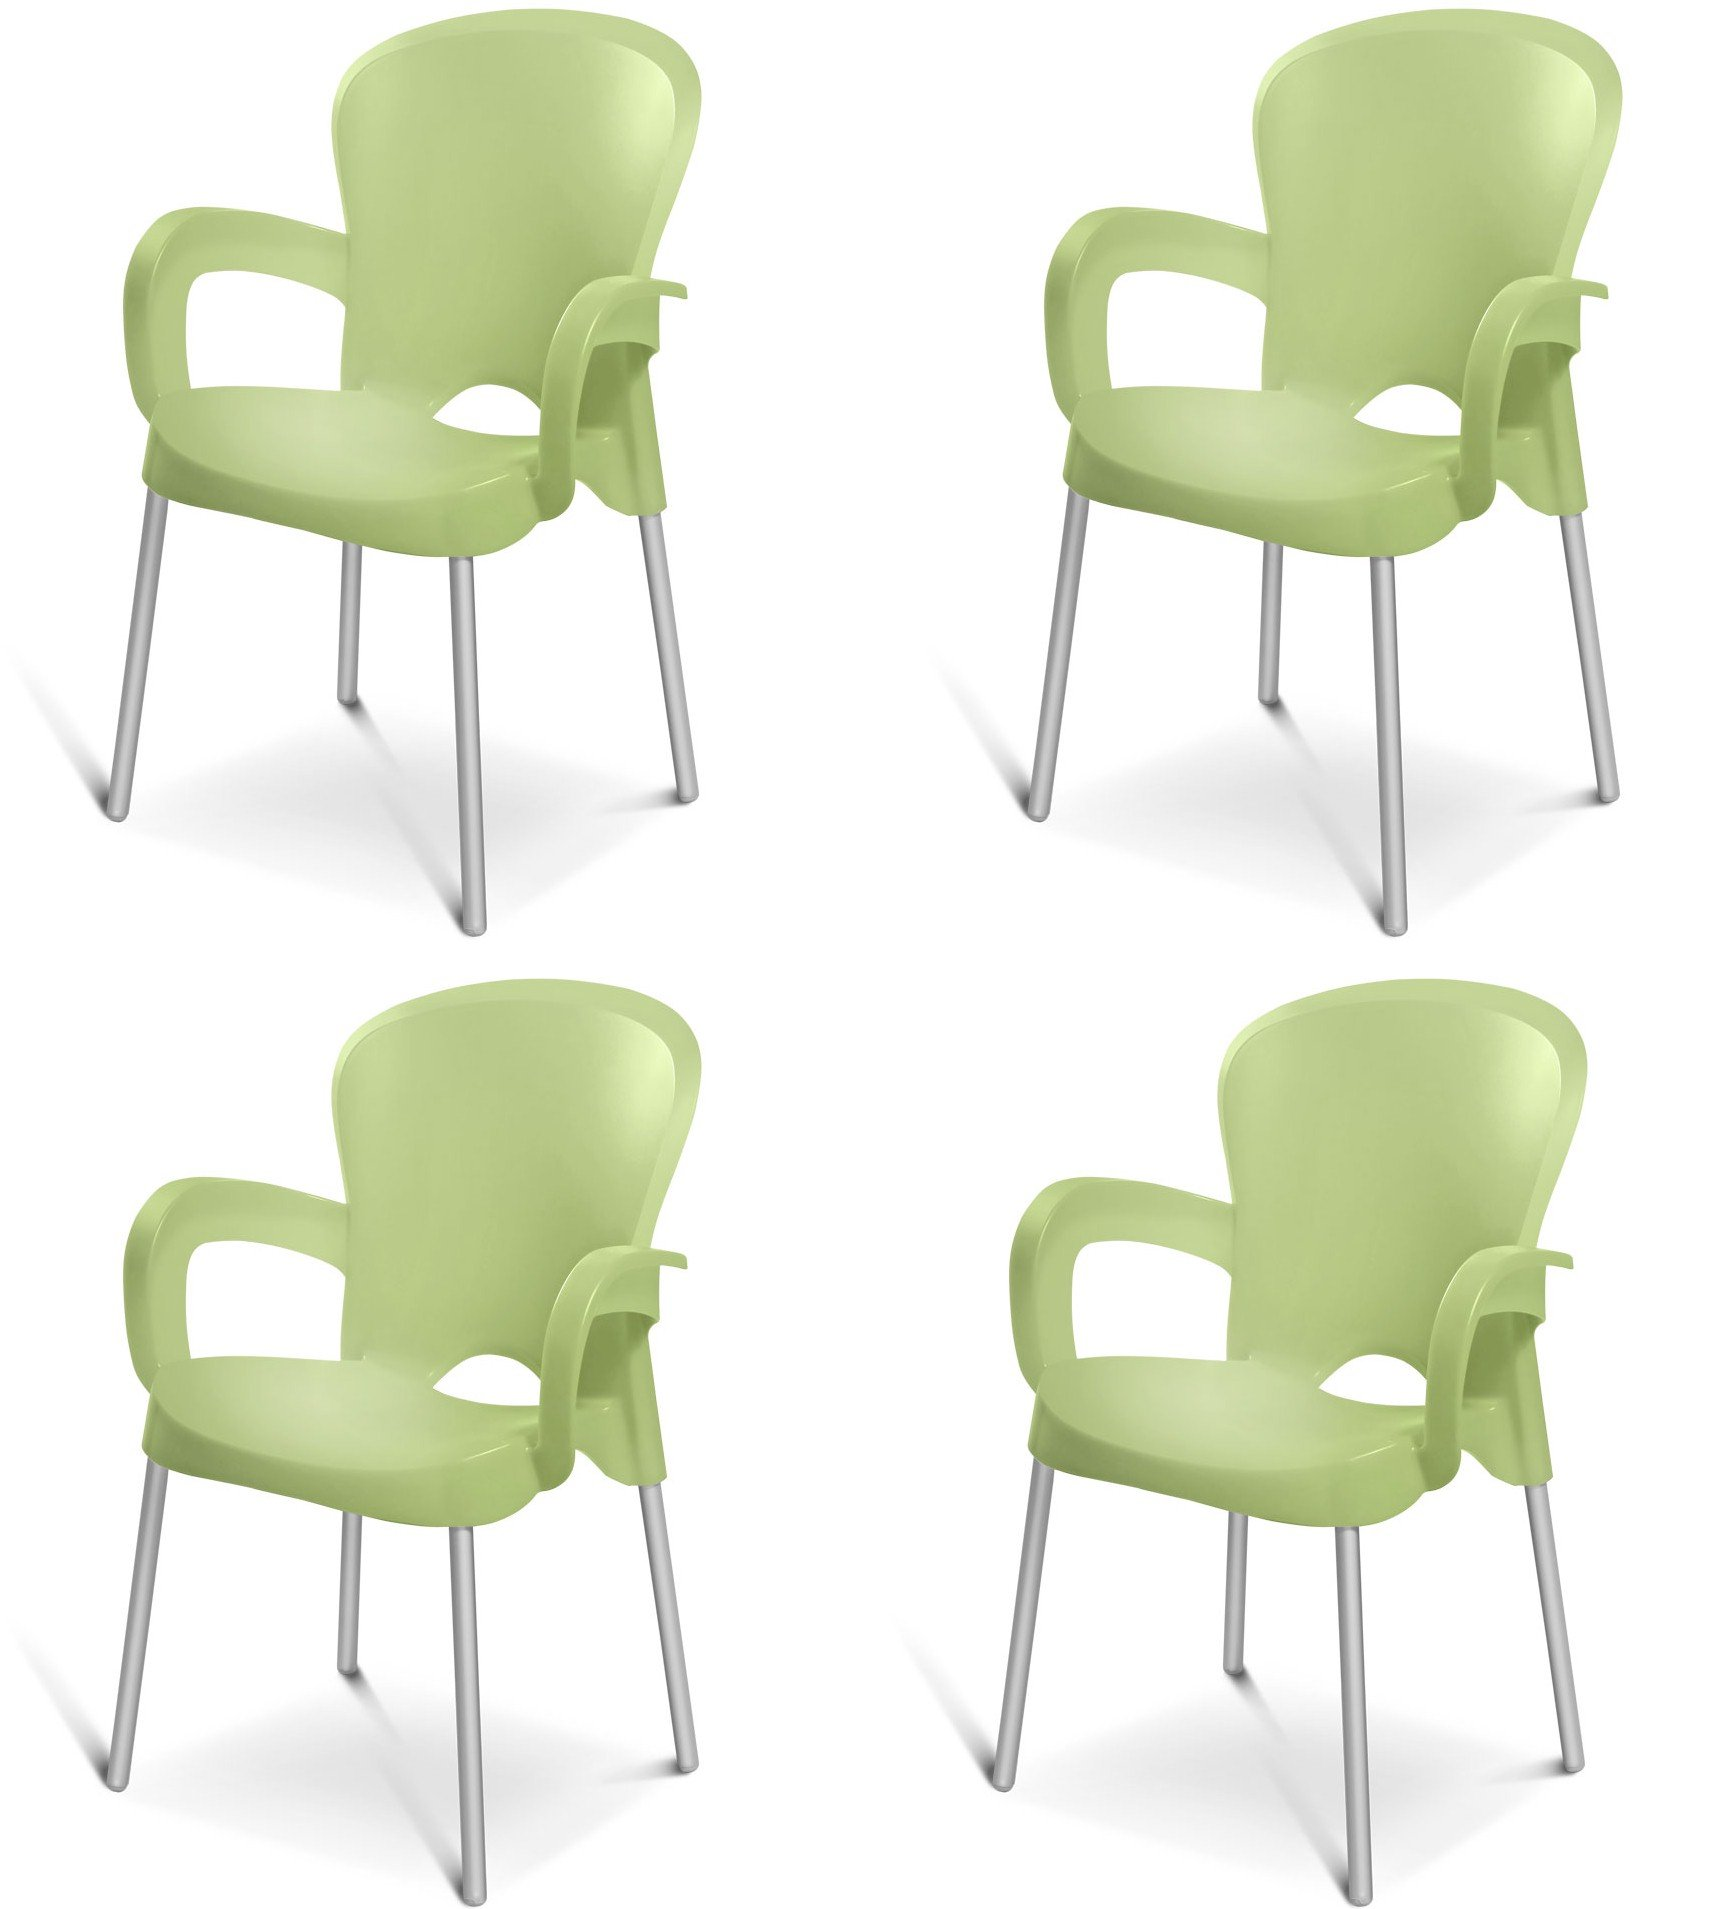 Plascoline Platin Stackable Chair (Set of 4), Green